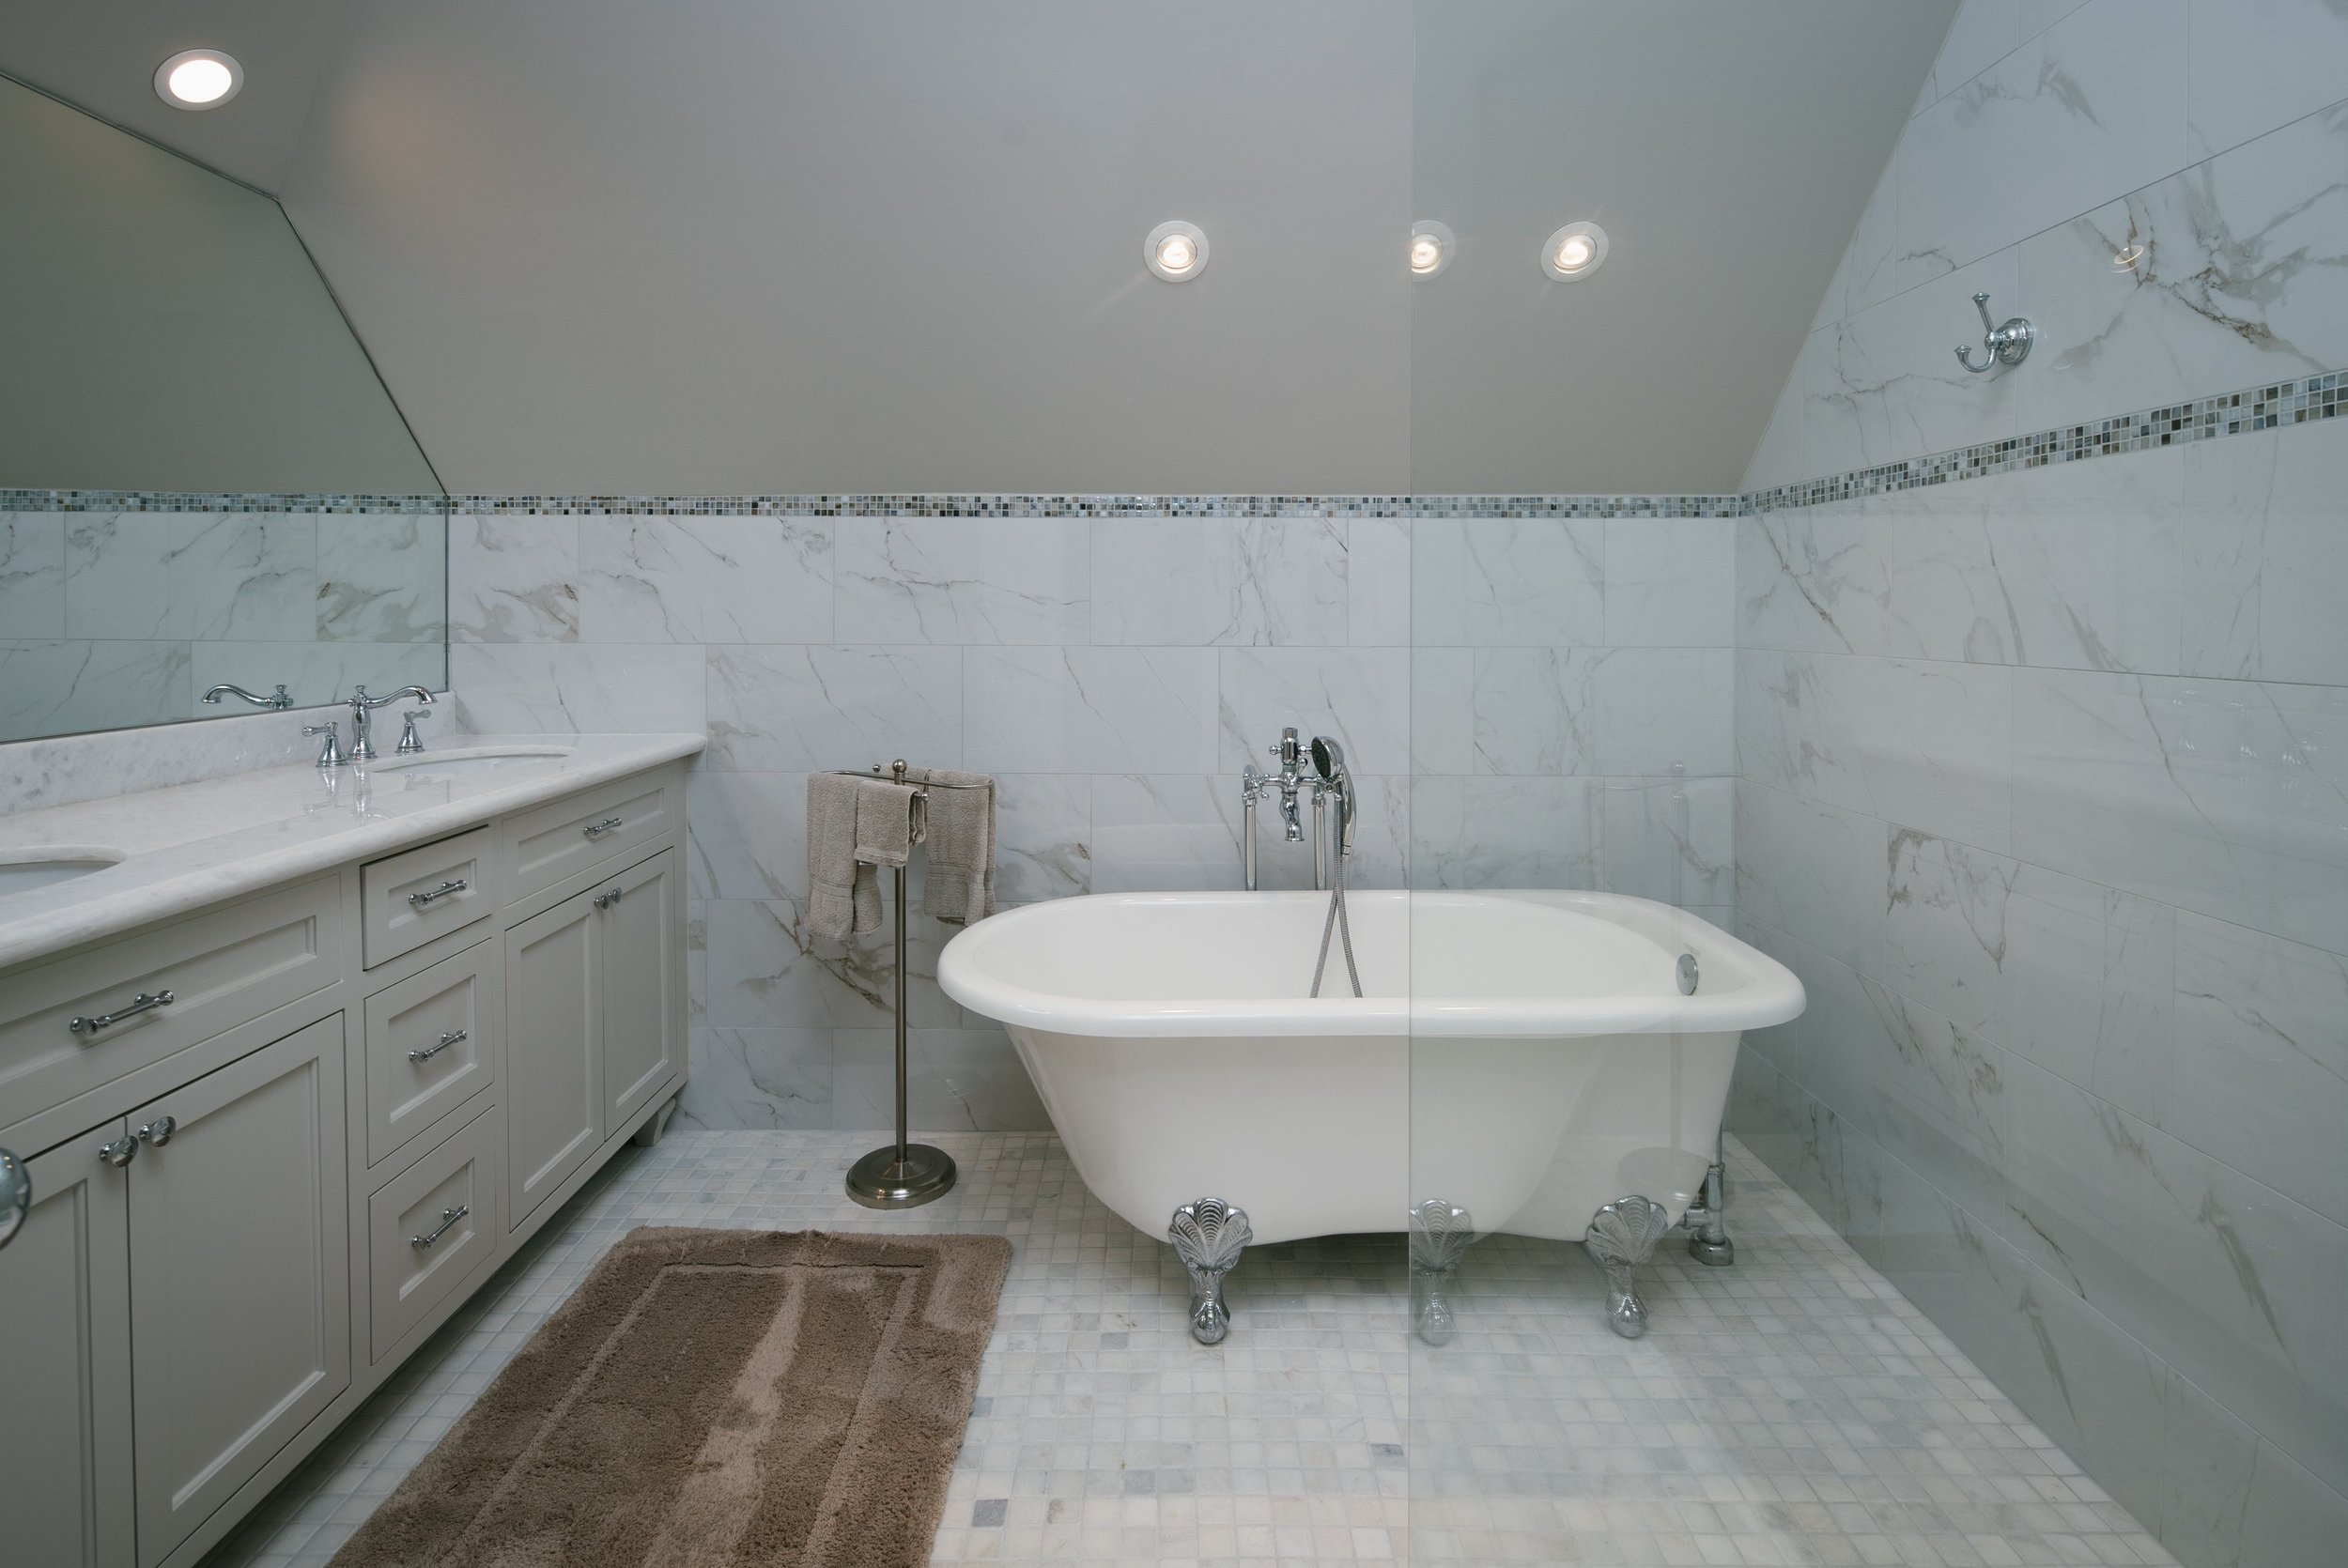 This guest bathroom is designed with rich yet simple features in order to make it a relaxing escape for guests. It features a walk in frameless shower, a claw foot bath tub and unique grey tile with a contrasting border. The custom cabinets finish off the room with clean perfection.